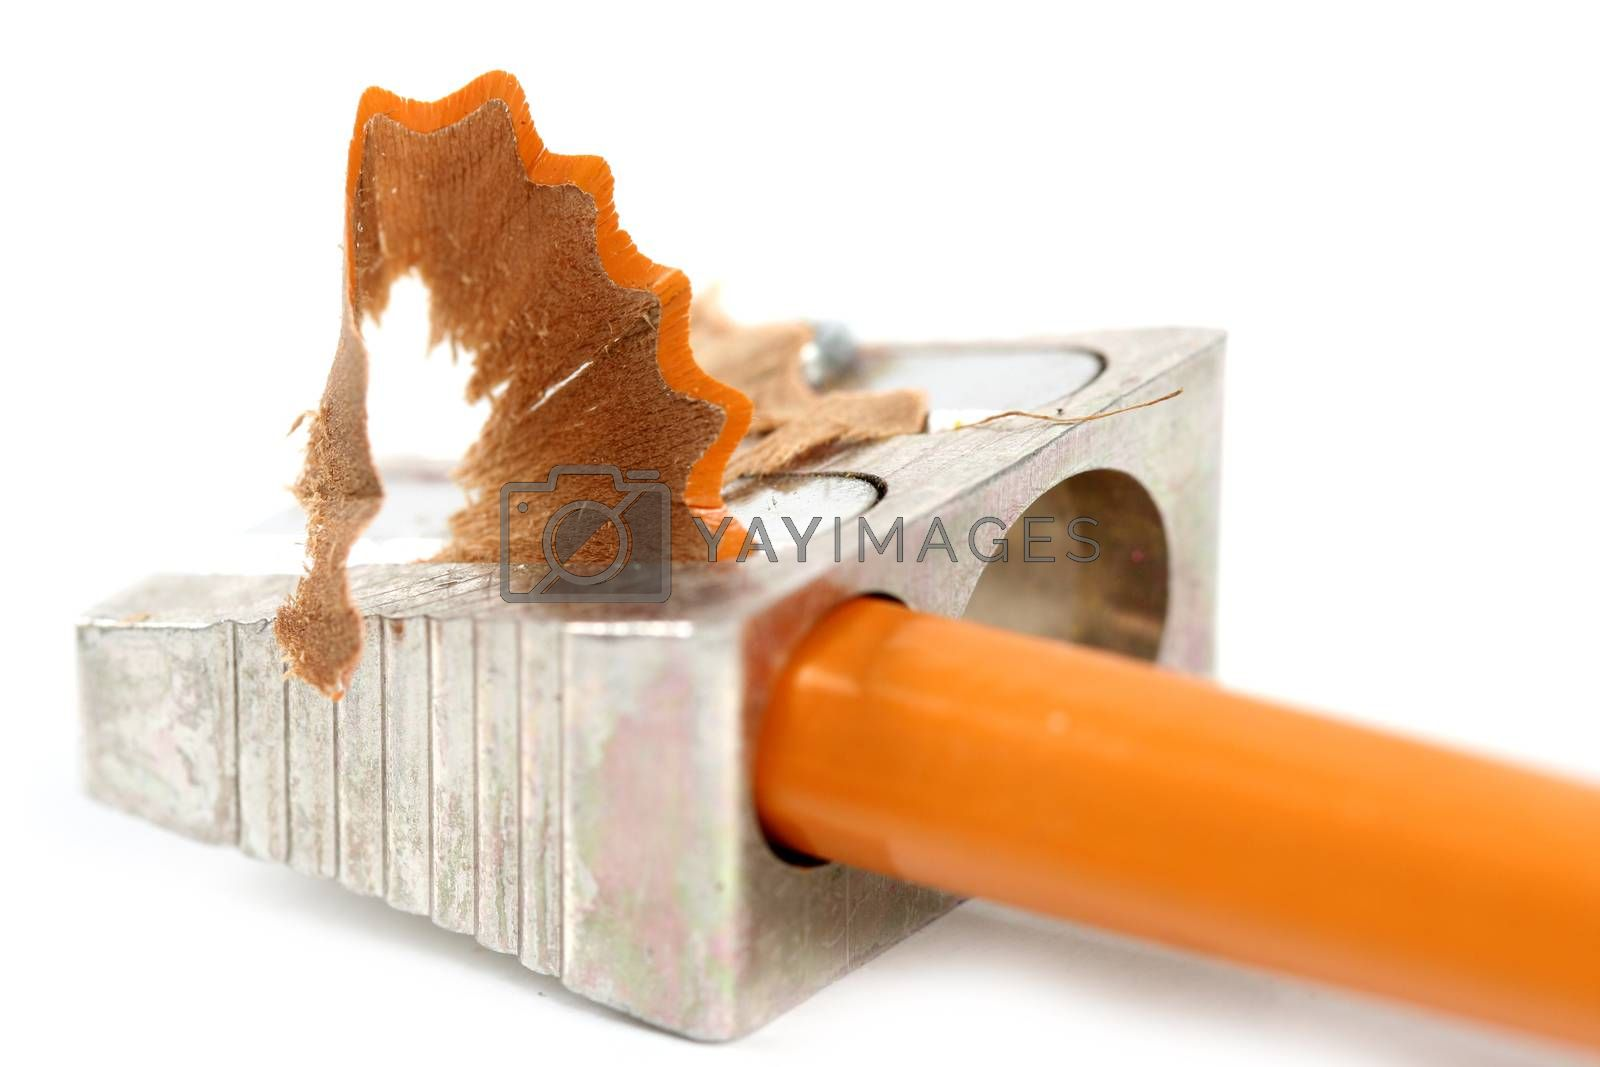 Pencil and sharpener by arosoft